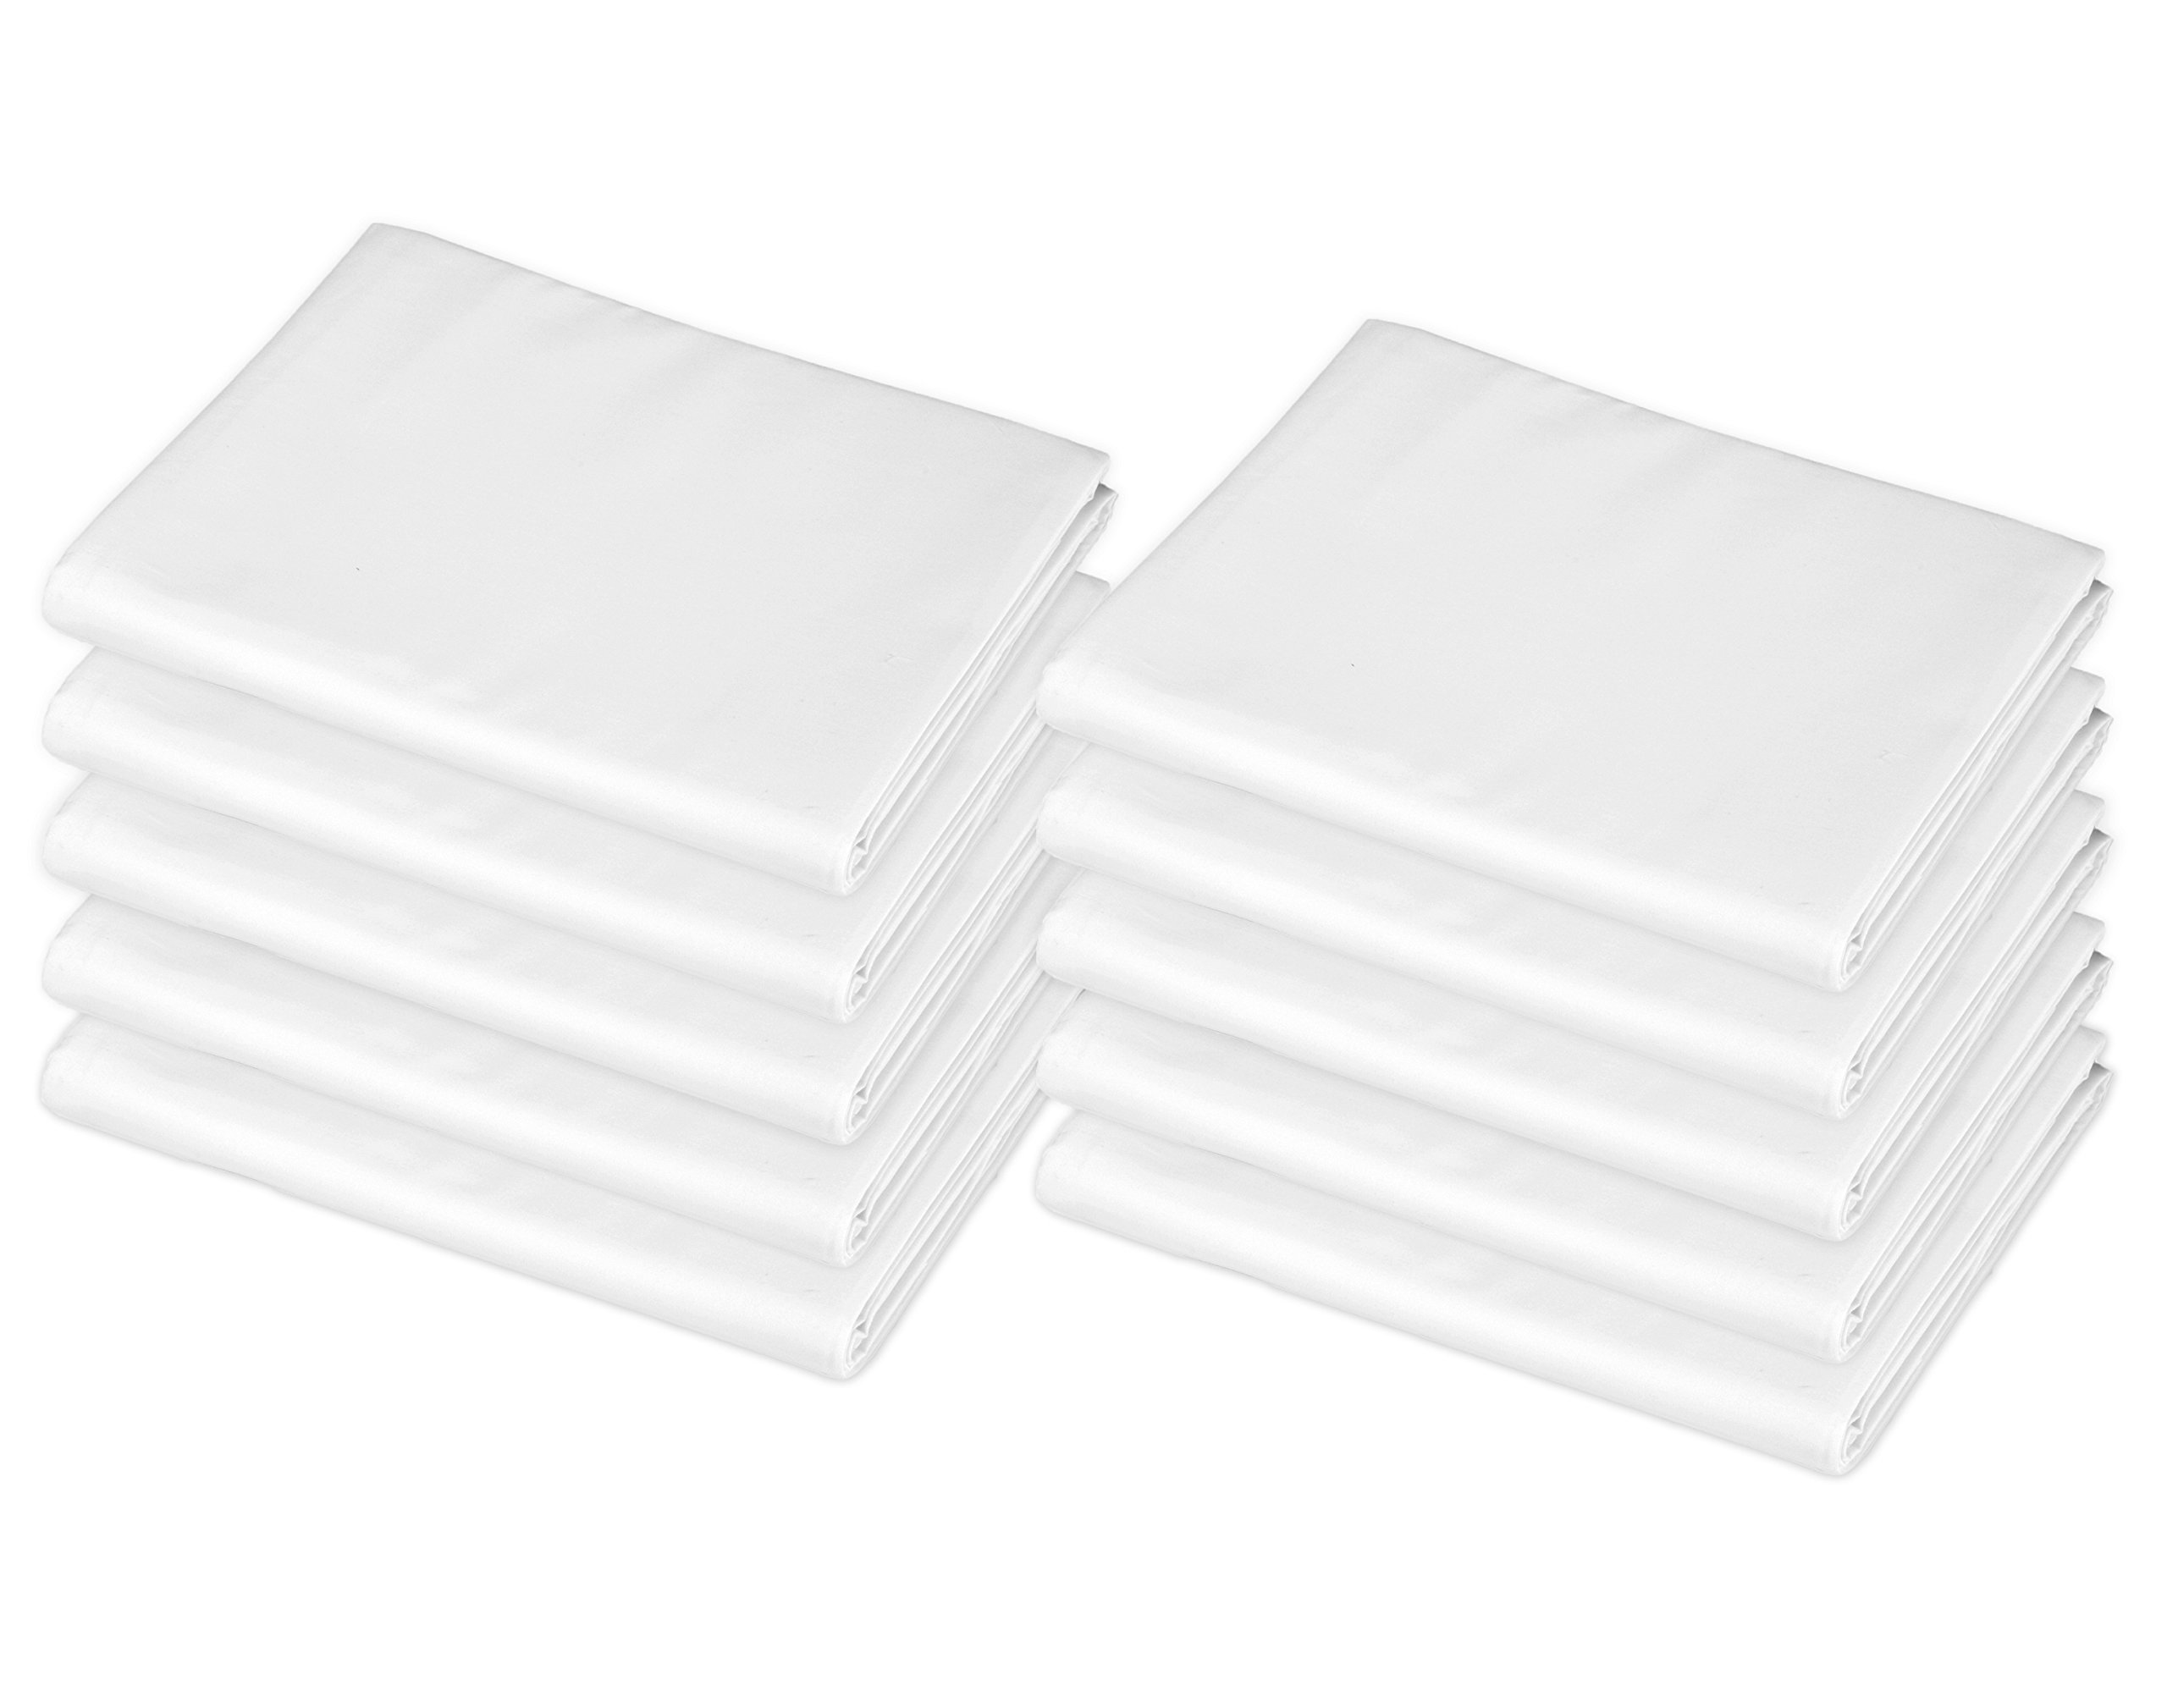 """American Baby Company 10-Piece 100% Cotton Percale Fitted with Elastic Corners Day Care Mat Sheet, White, 24"""" x 48"""" x 4"""""""